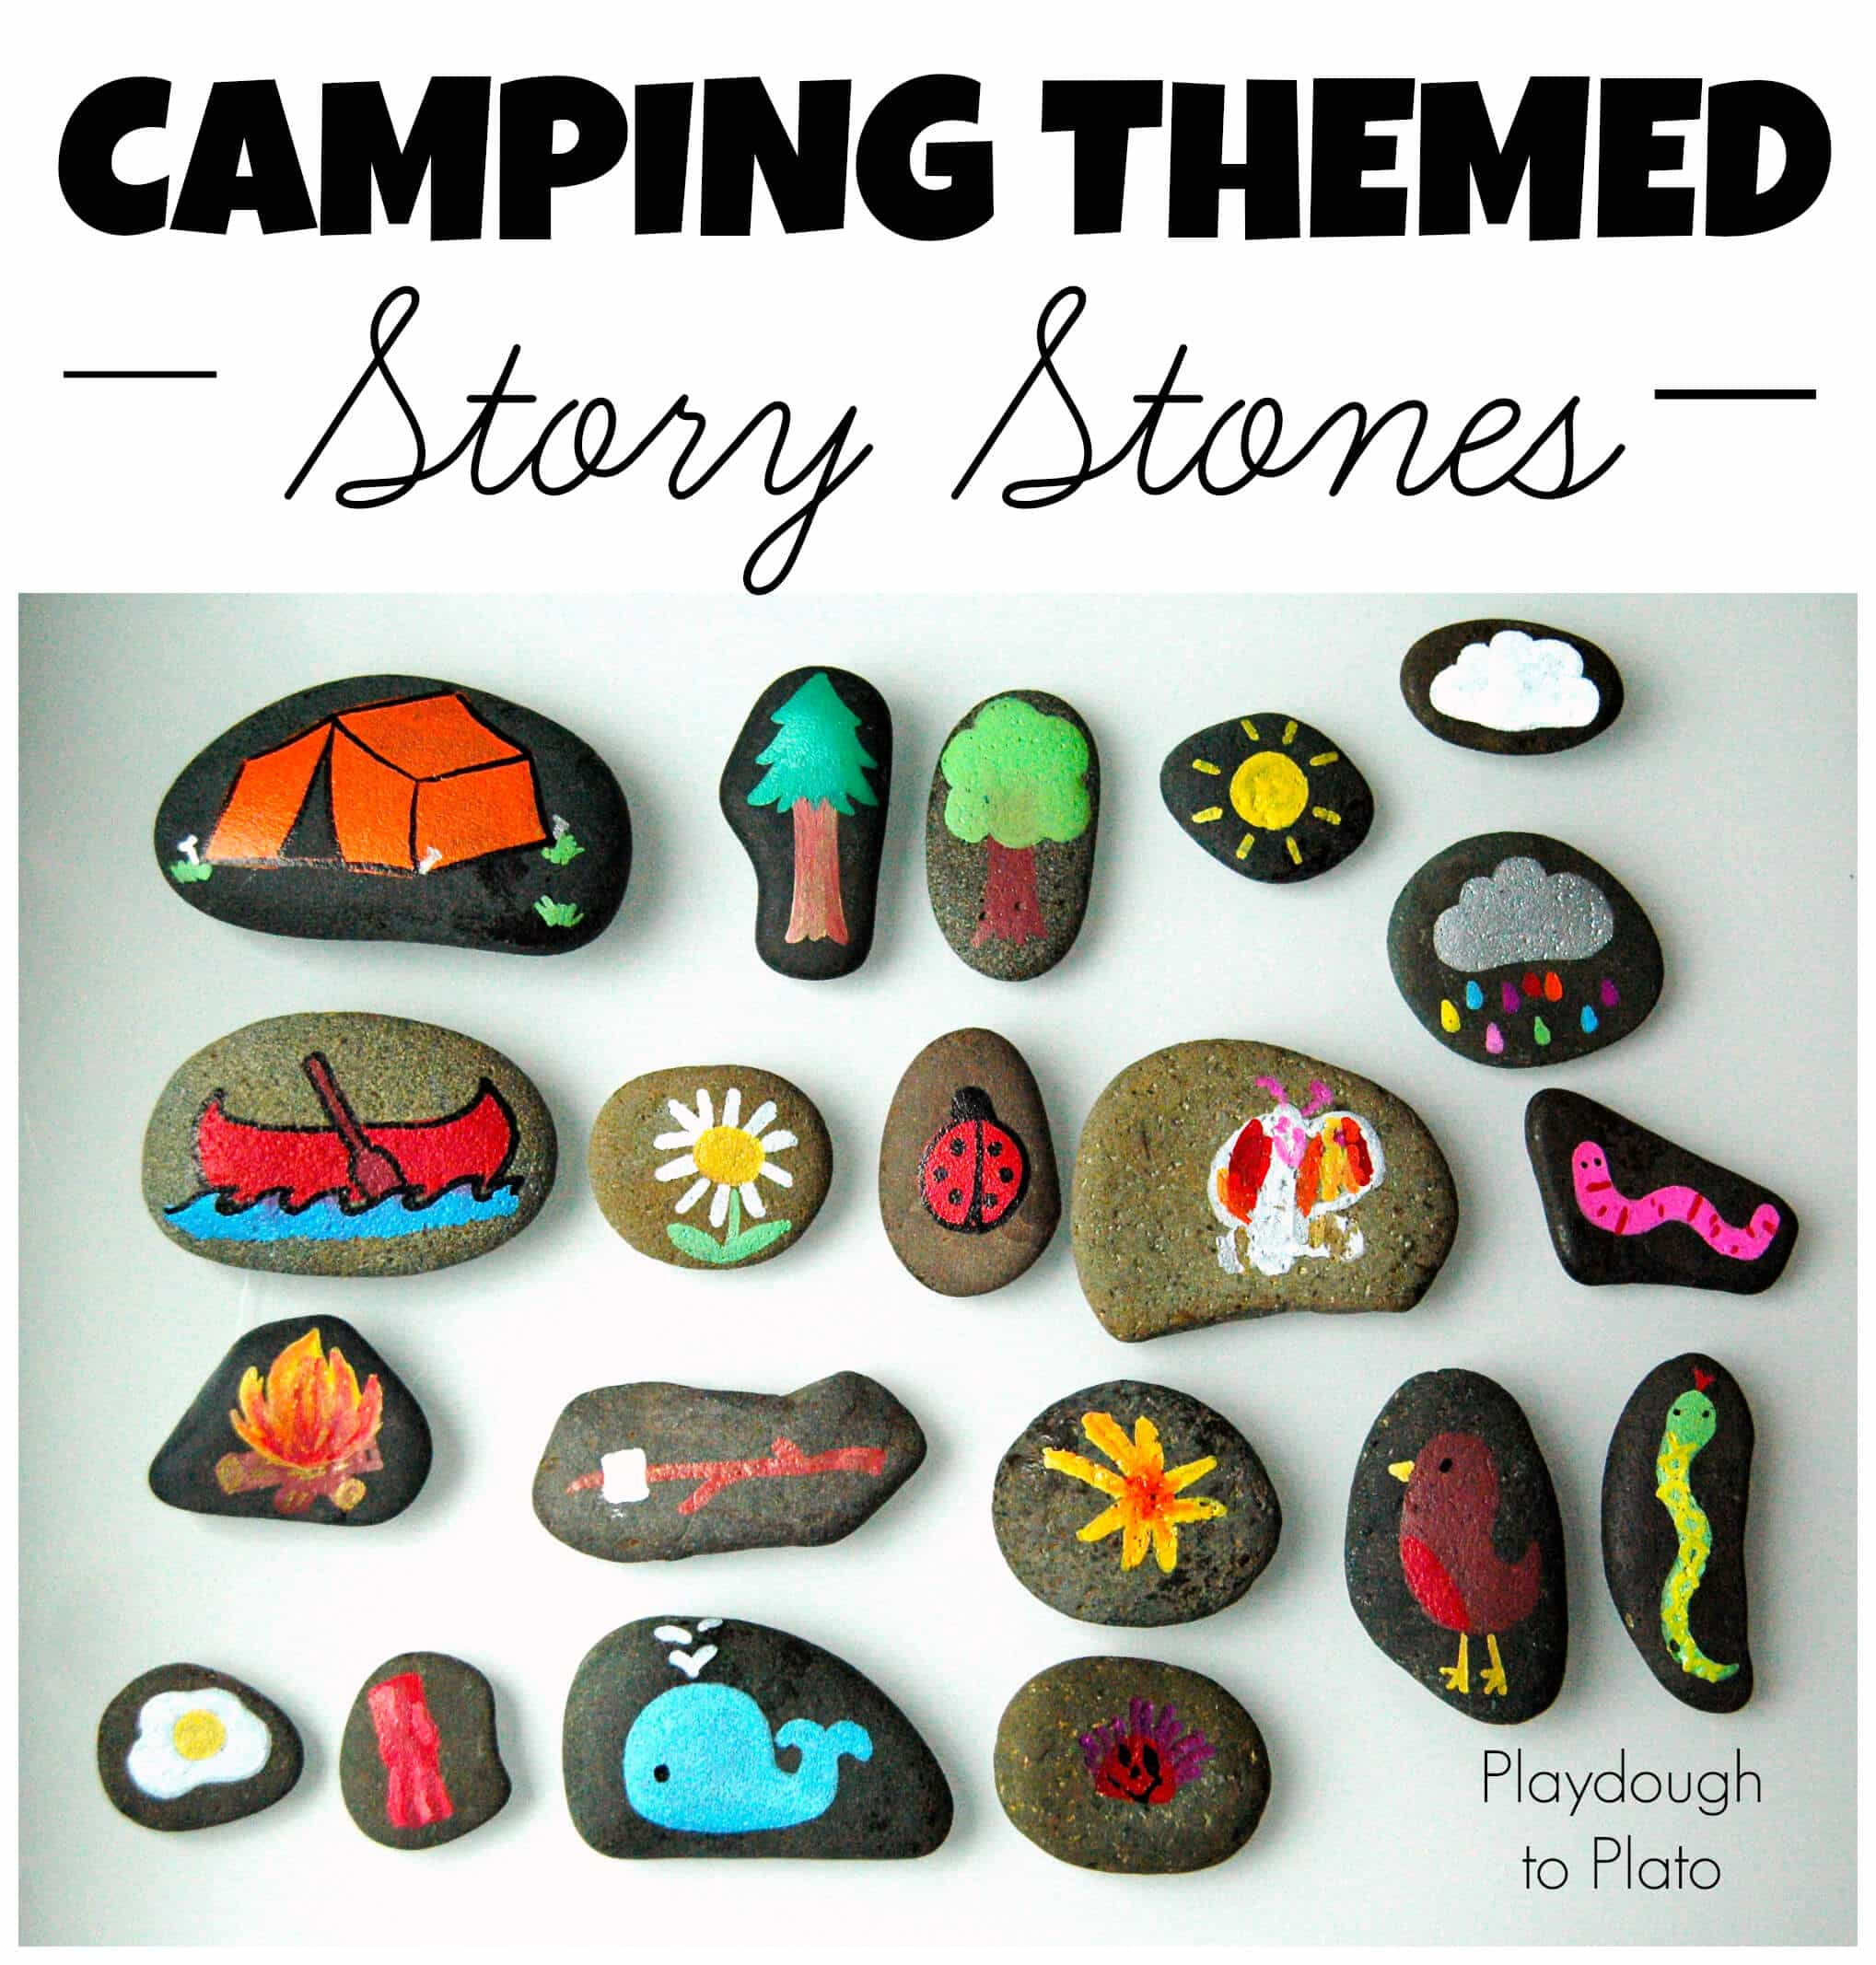 Camping themed story stones make a fun camping craft and an activity families can share around the campfire. | | Easy outdoor rock crafts to take camping. | Meander & Coast #inspirationalrocks #paintedrocks #wordart #rocksforoutdoors #rockart #outdoorcrafts #teencrafts #campcrafts #camping #rockpainting